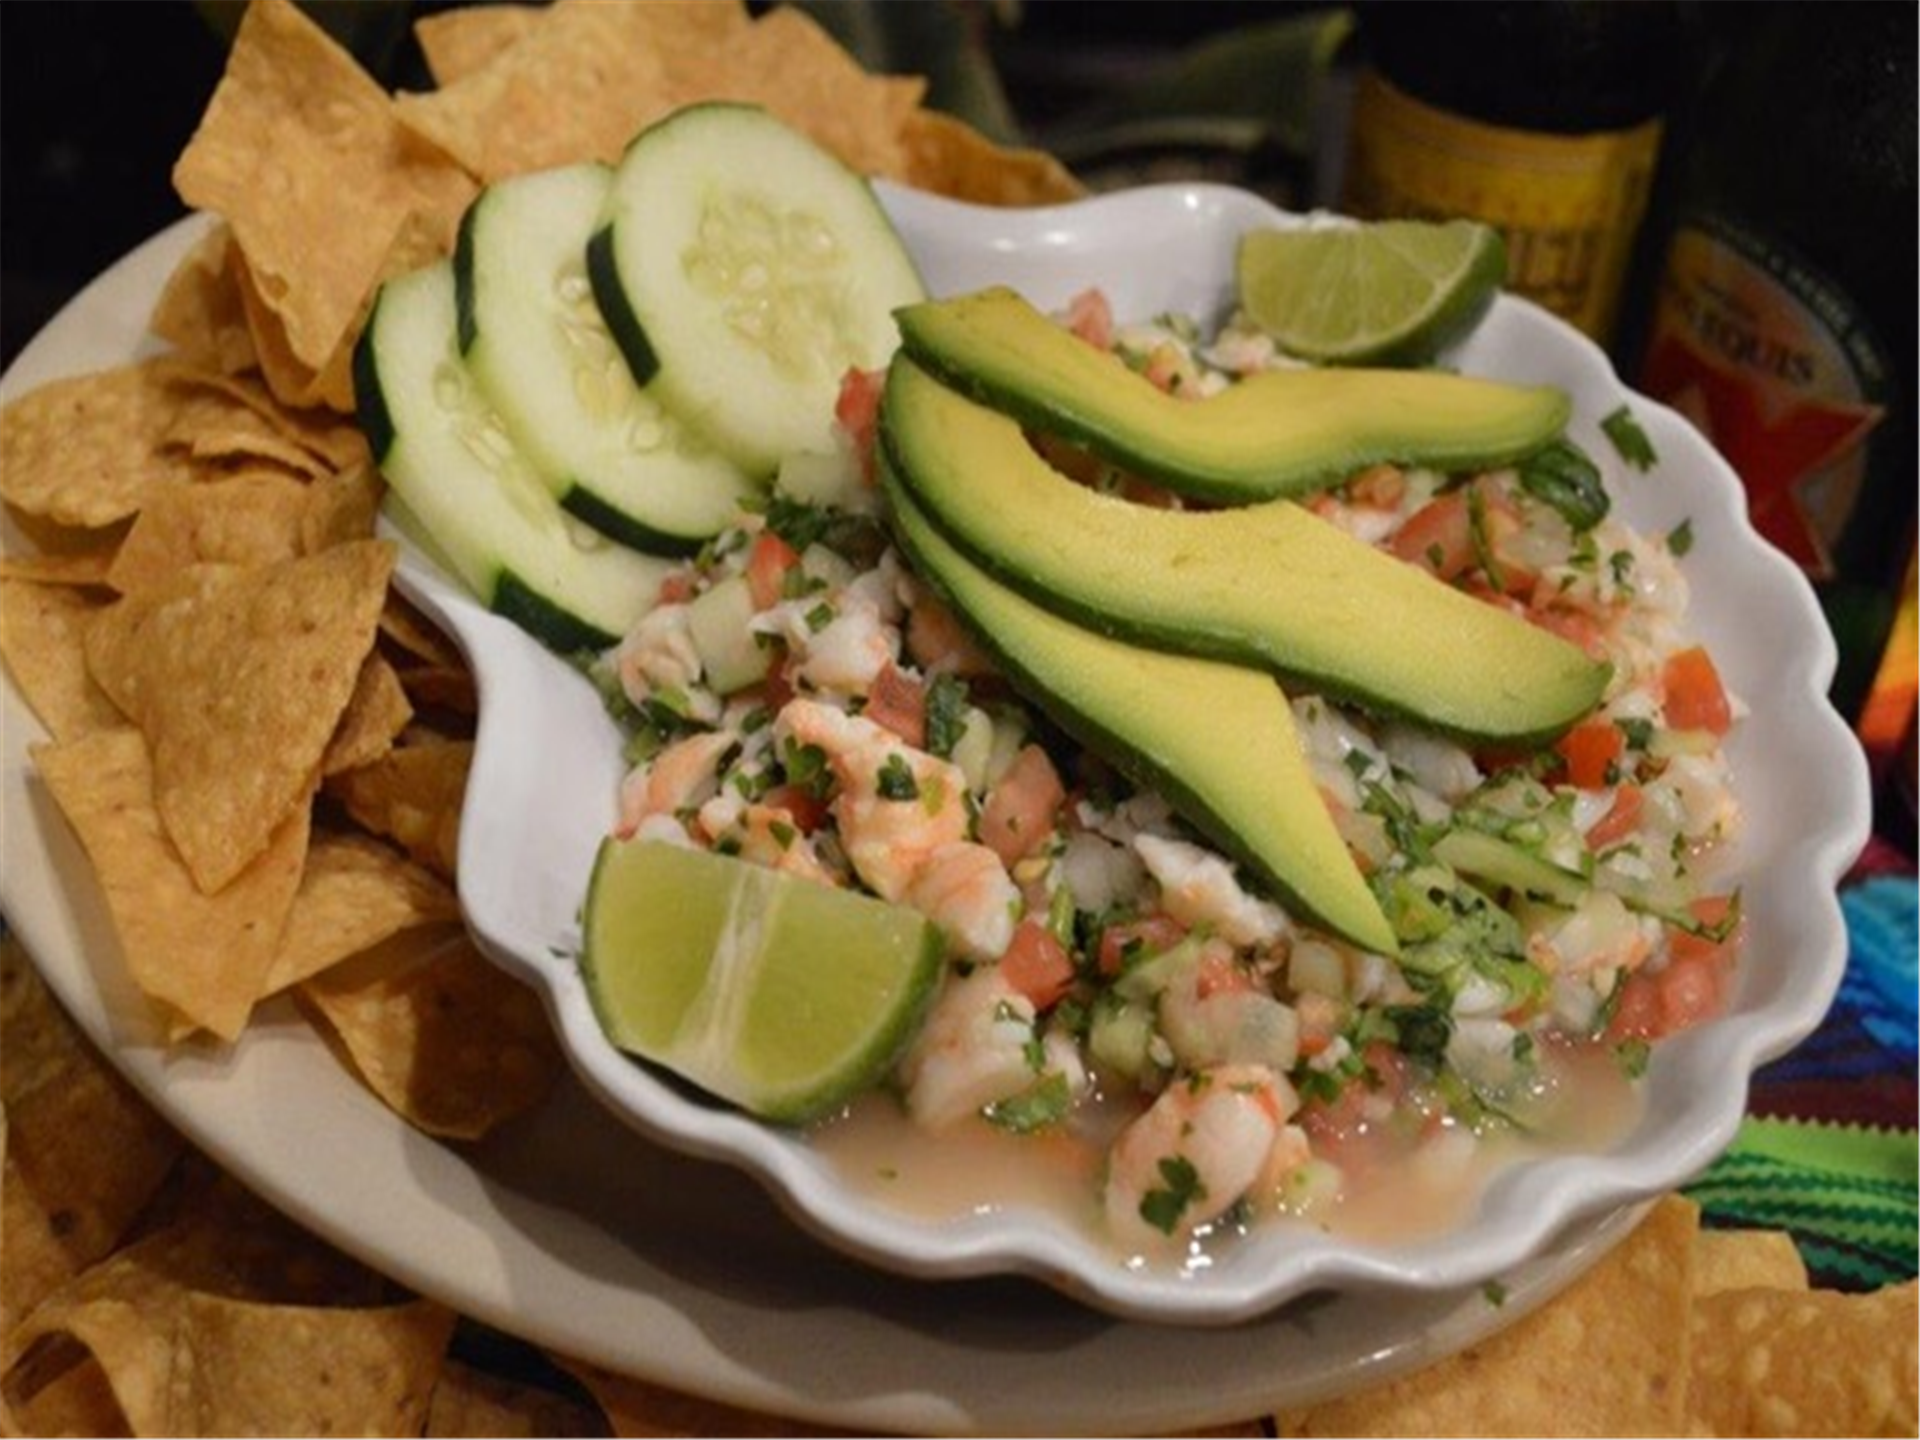 Shrimp cooked in lime juice, chopped fine onions, tomatoes & cilantro. Topped with slices of avocados. Served with chips or saltine crackers